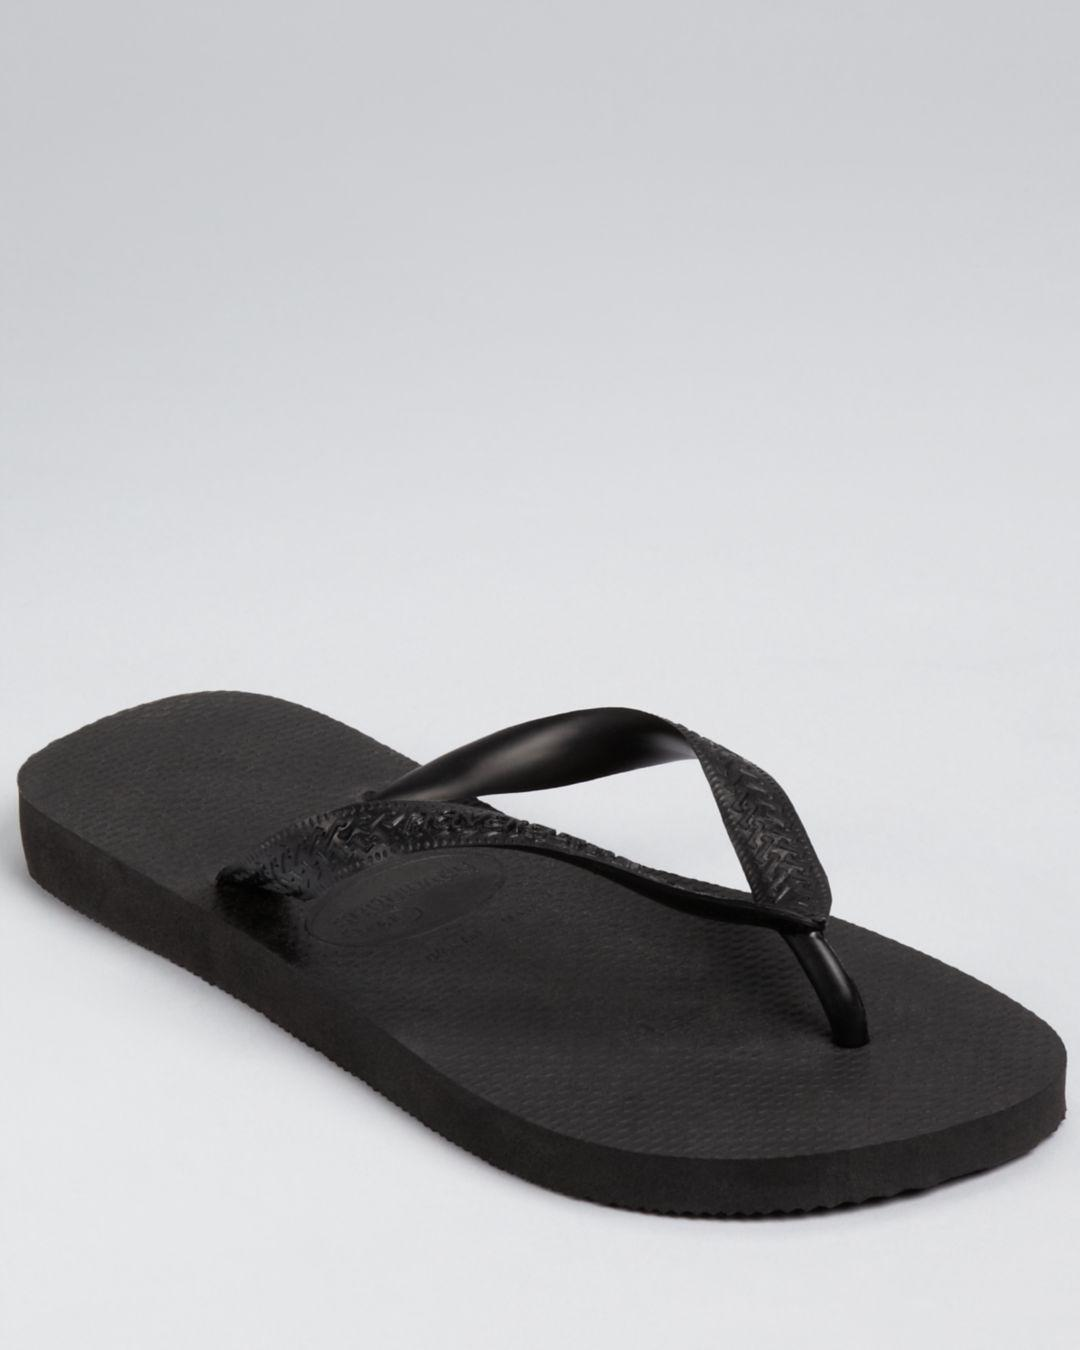 1fadf9fc2256 Lyst - Havaianas Men s Top Solid Sandals in Black for Men - Save 72%